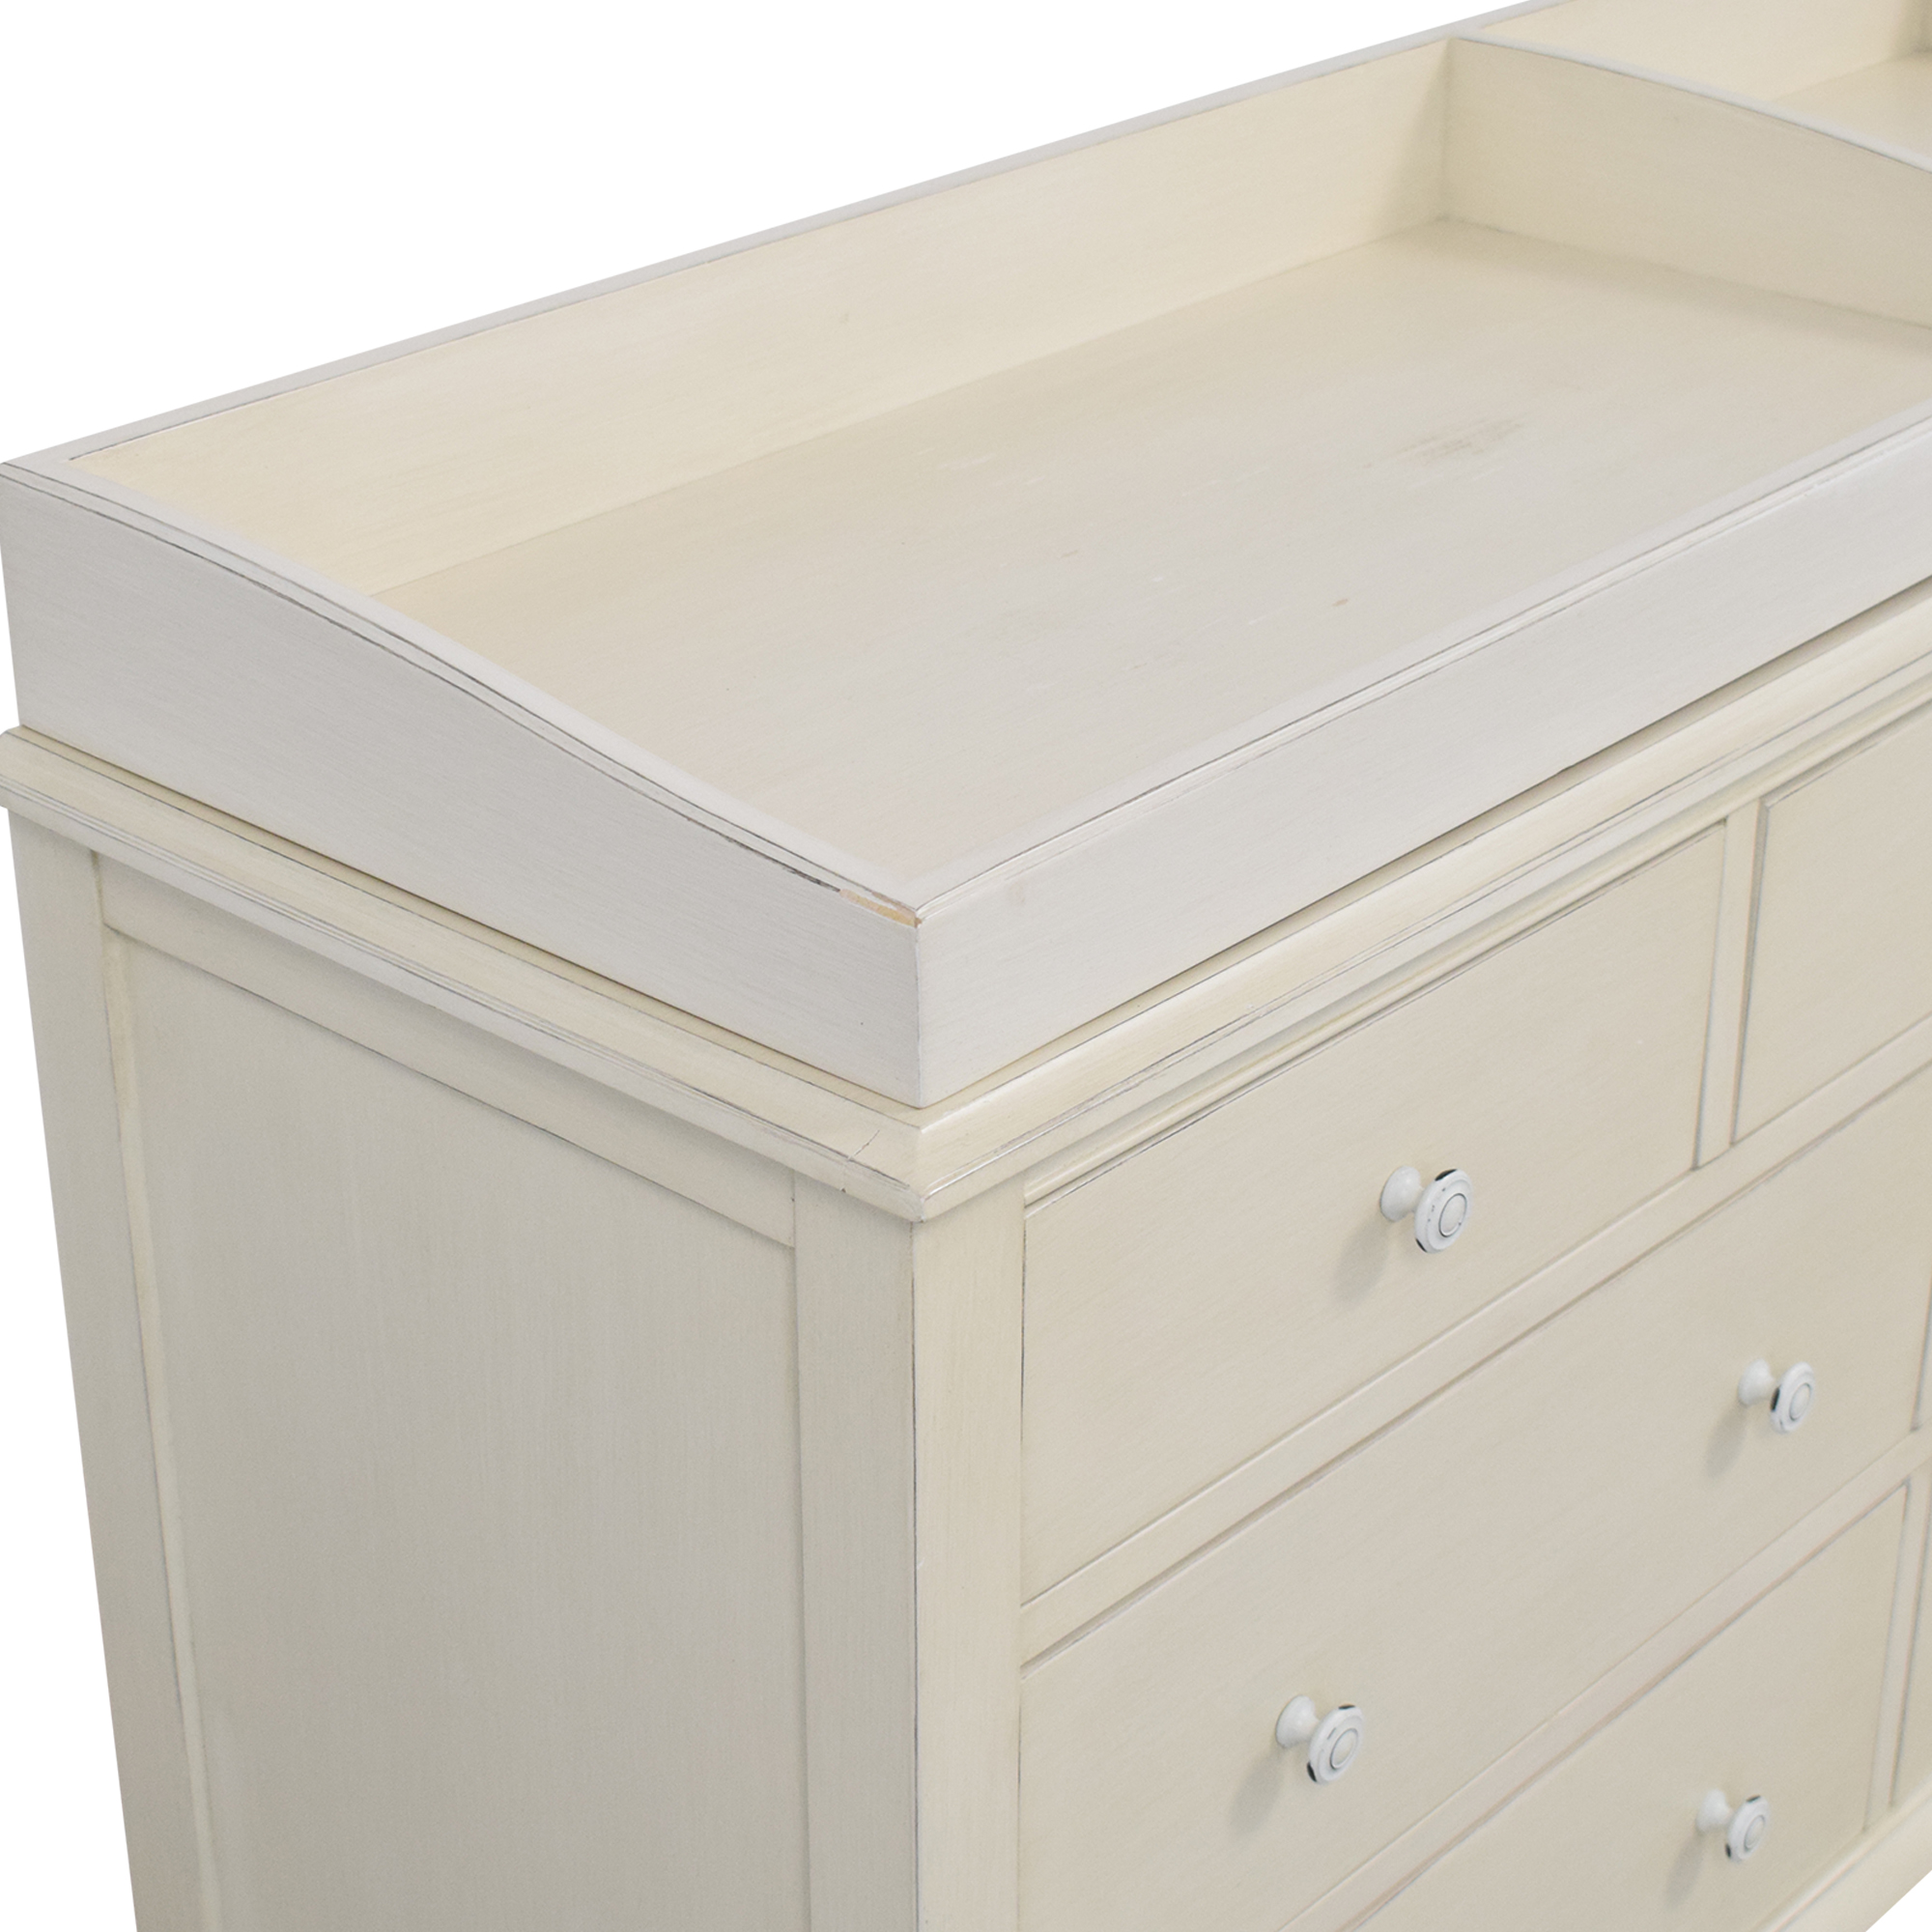 Restoration Hardware Restoration Hardware Adele Wide Dresser with Topper for sale